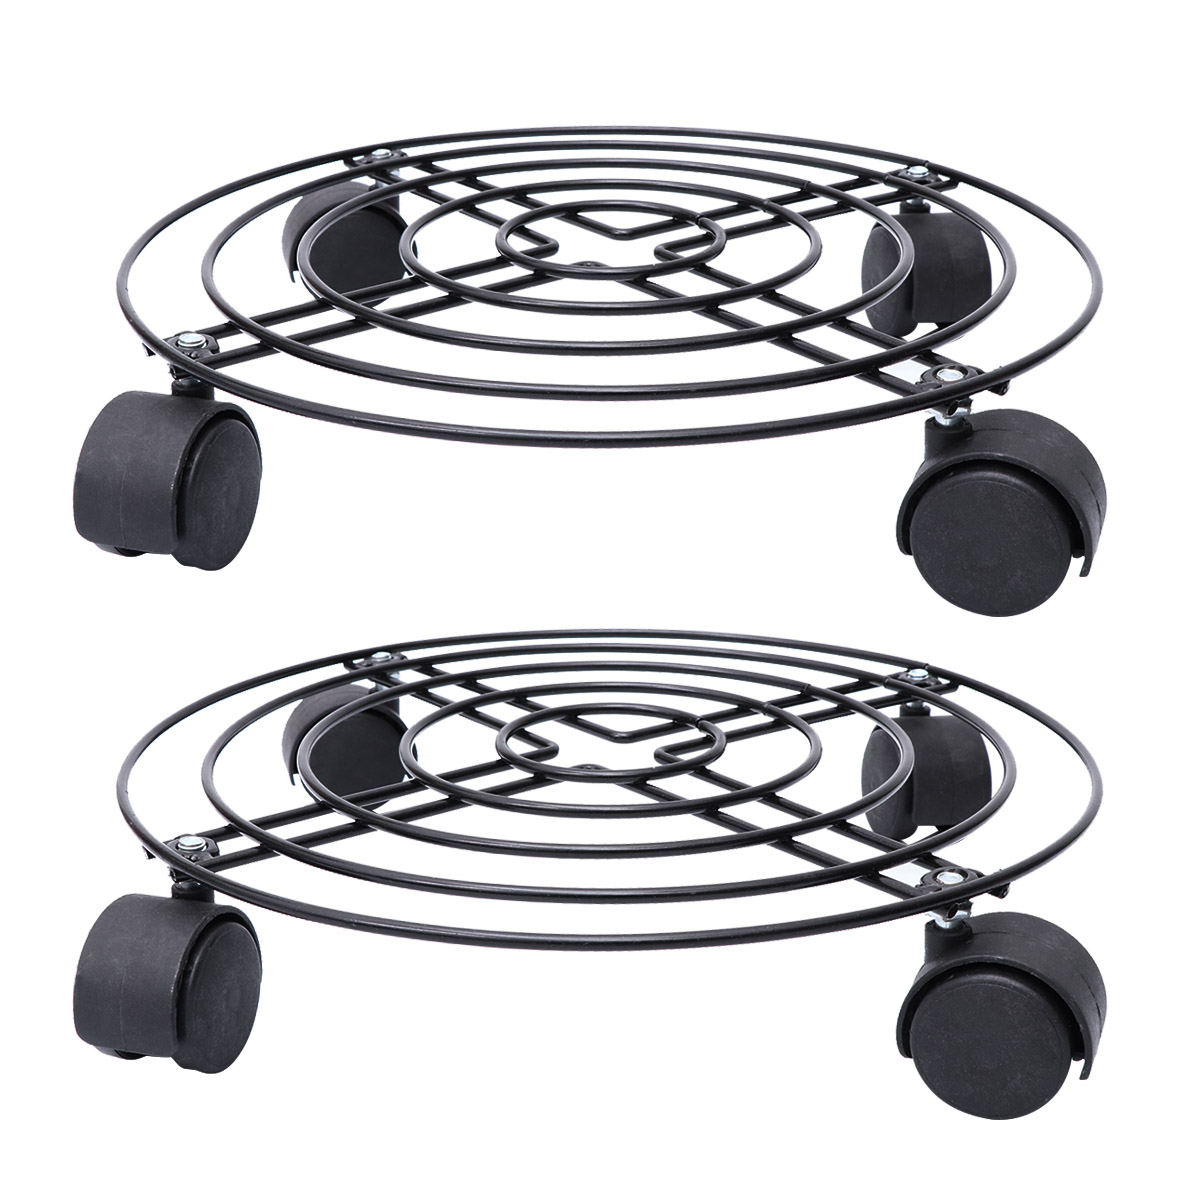 1Pc Flower Plant Pot Round Wheels casters Mover Trolley Garden Tools Caddy Stand